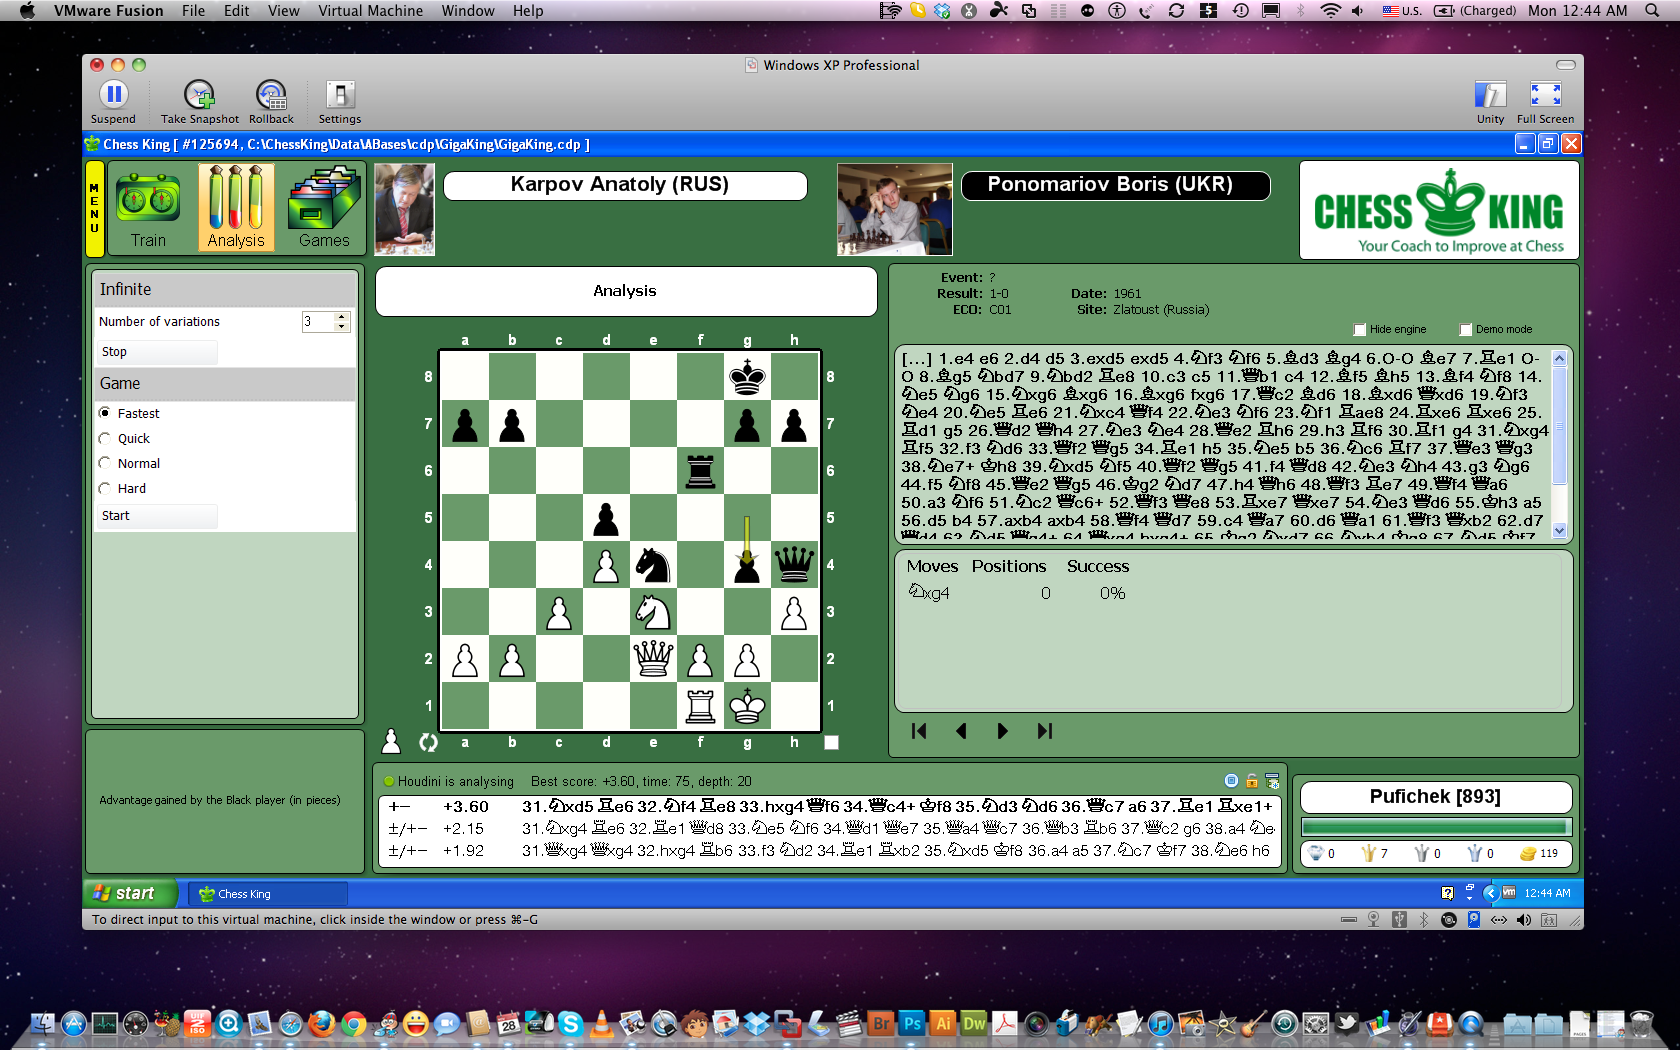 www chess-king com The home of CHESS KING Affordable Chess